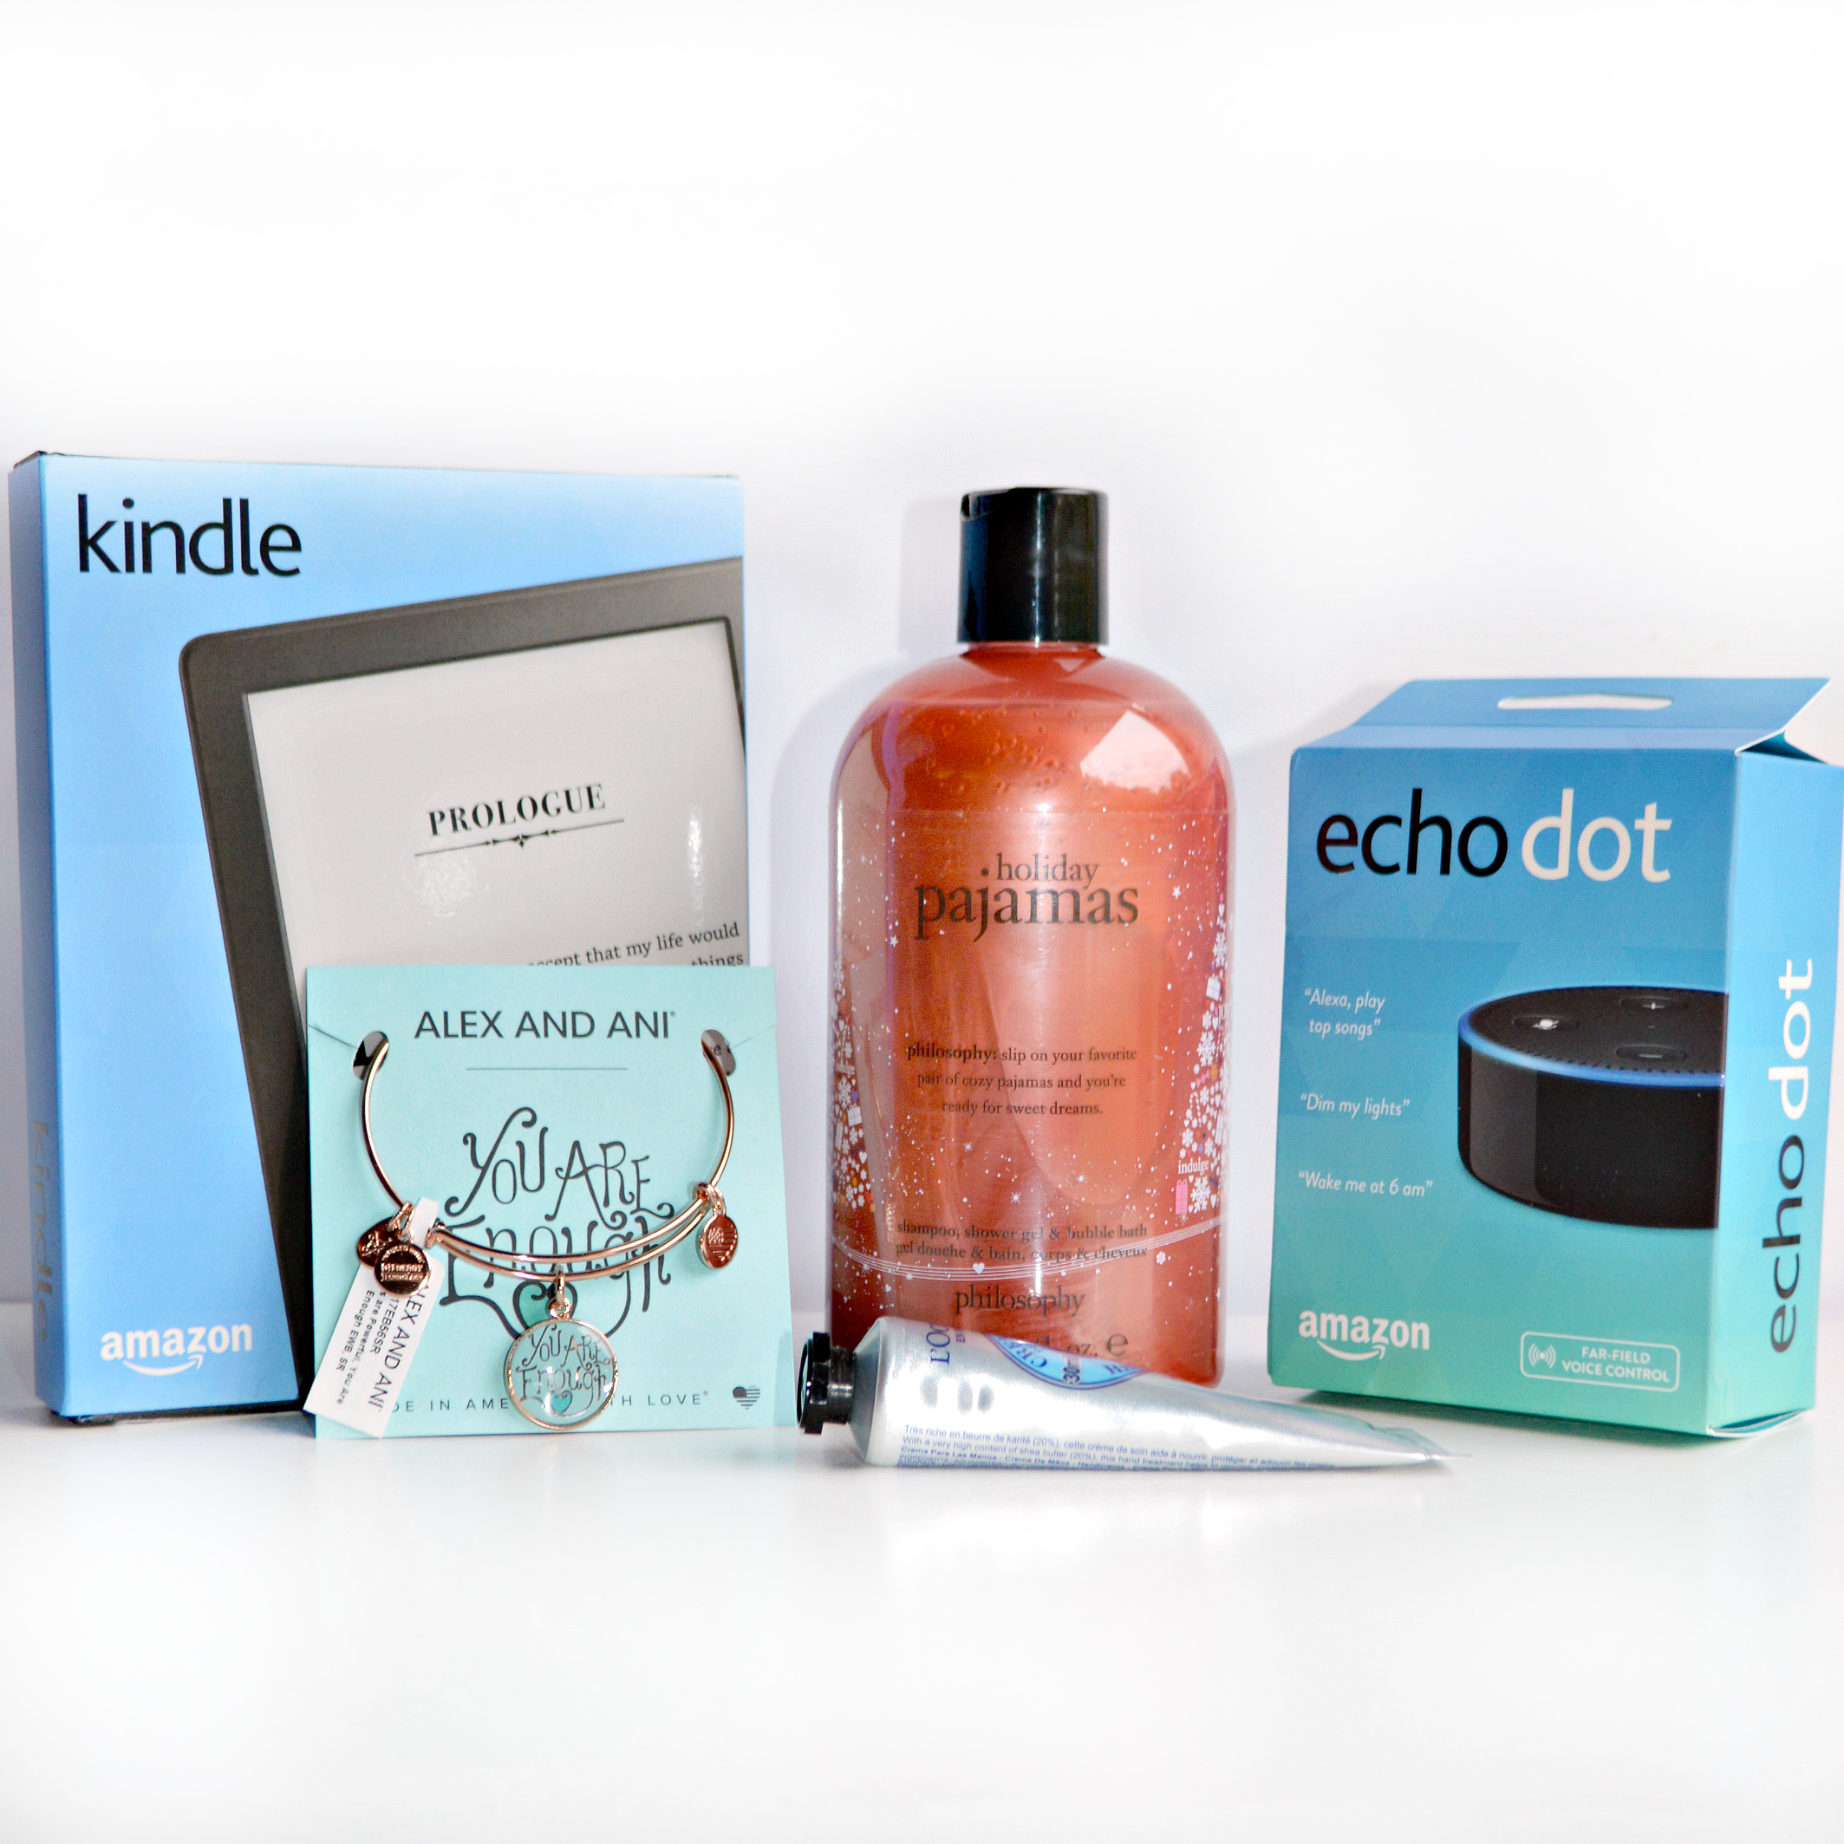 My Favorite Things Holiday Giveaway Prize Package